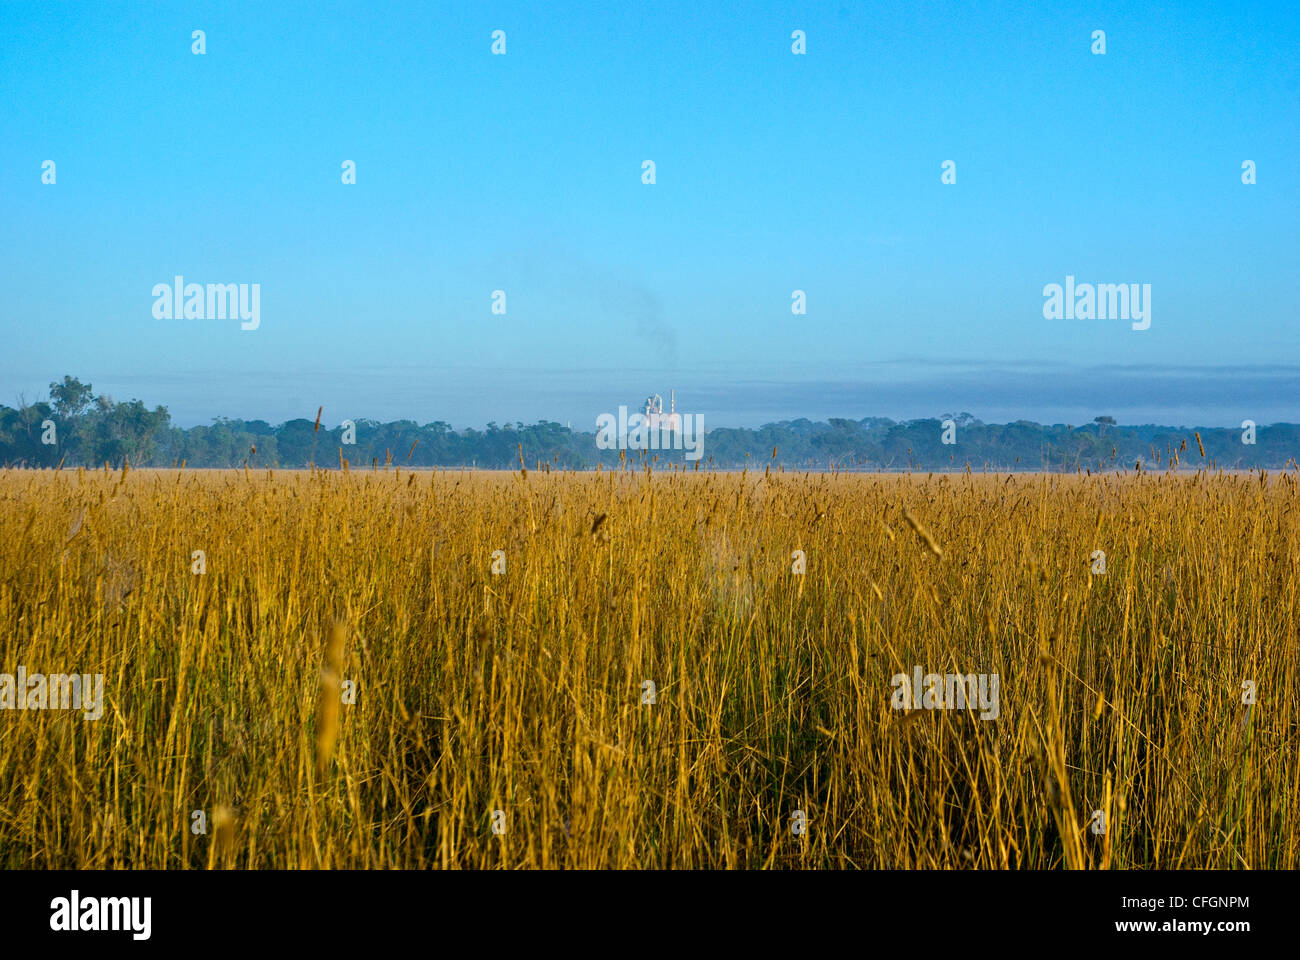 A cement factory rises over a line of trees and a farm field of wheat. - Stock Image